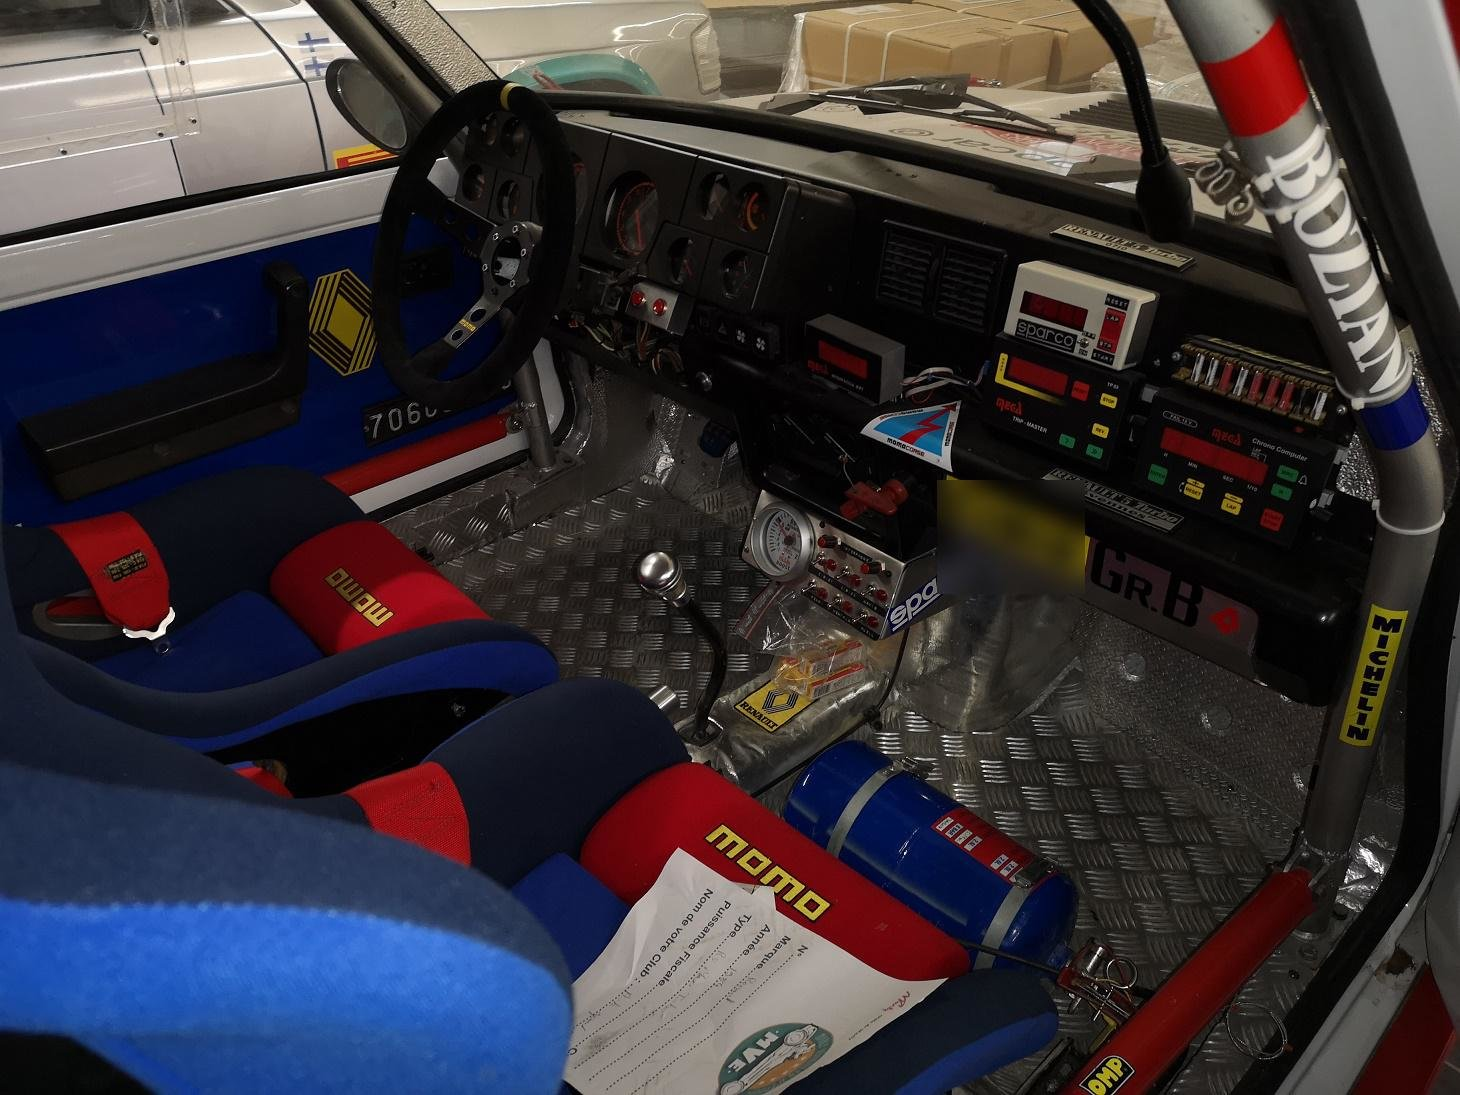 1981 Renault R5 turbo1 For Sale (picture 4 of 6)